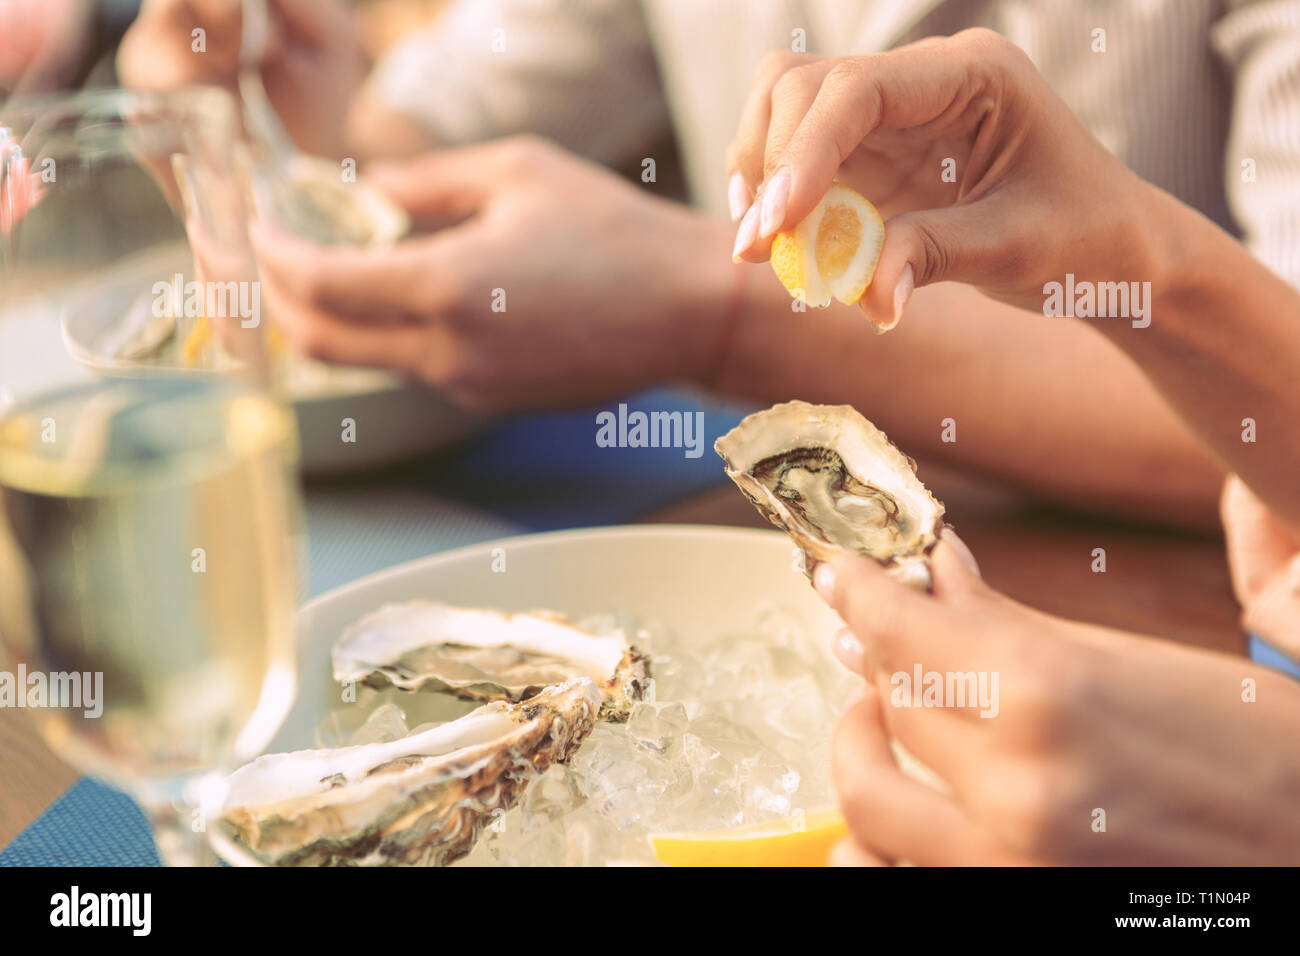 Gentle lady carrying piece of lemon and squeezing it on fresh oyster - Stock Image